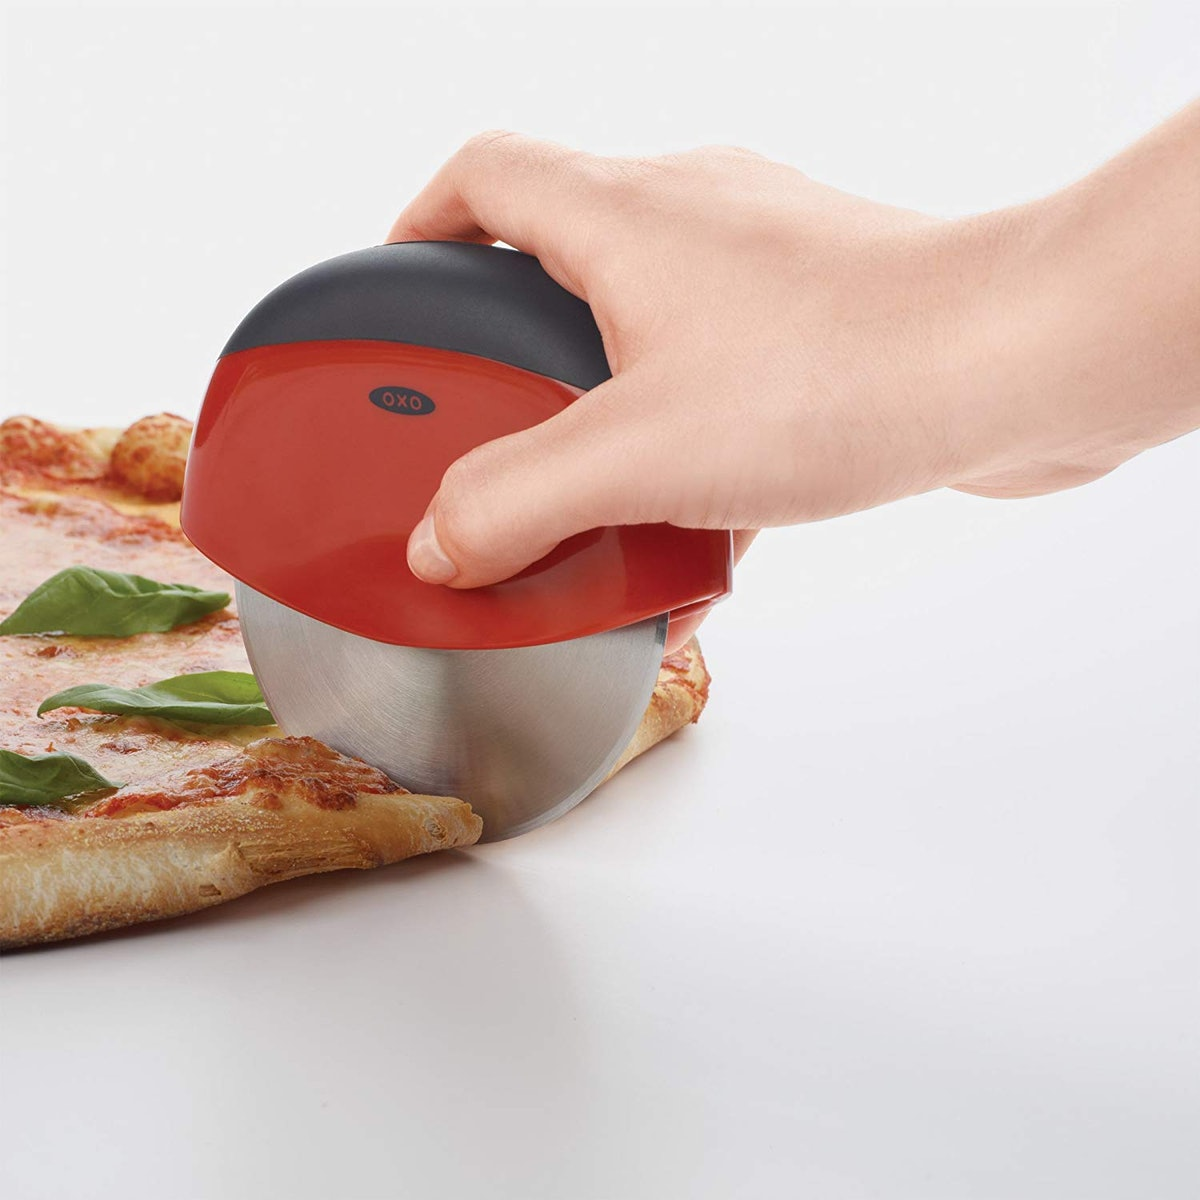 OXO Good Grips Pizza Wheel and Cutter